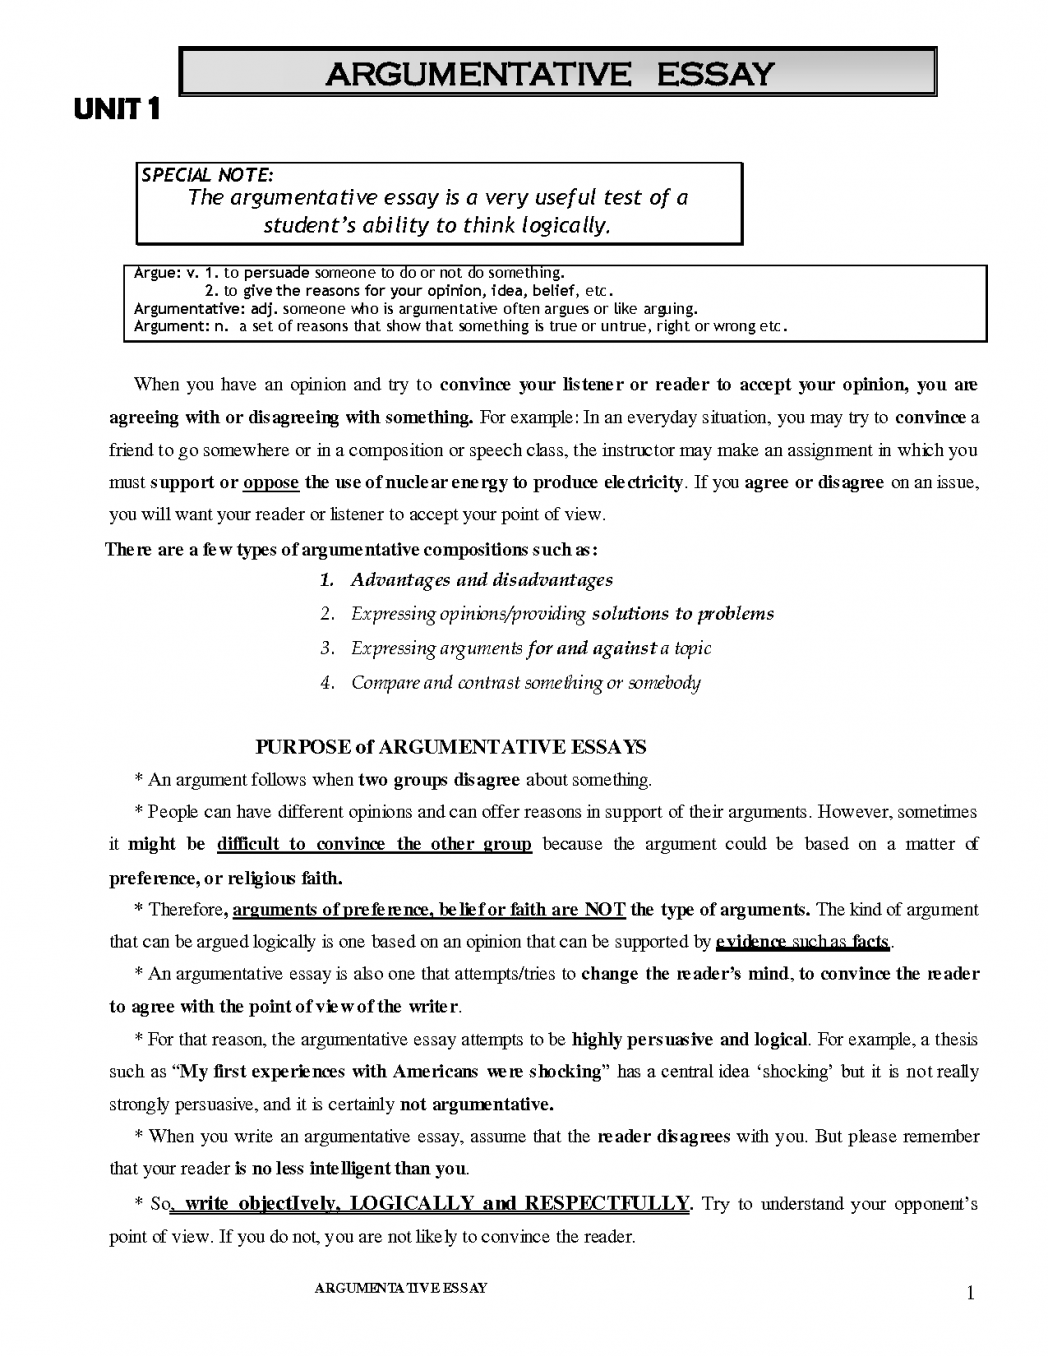 014 Essay Example Writing An Argument Argumentativeersuasive Essayspt Video Step By Lwhaeowerpoint About Firerevention Write Scope Middle School Edgenuity Thesis Outstanding Sample Argumentative Pdf Download Ppt Full